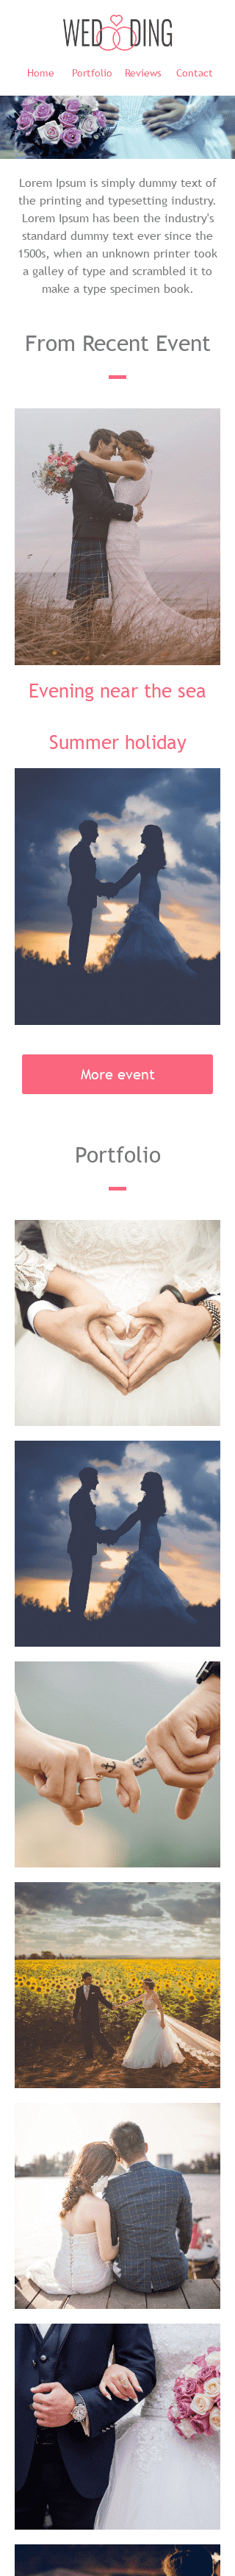 Promo Email Template «White Wedding» for Fashion industry mobile view